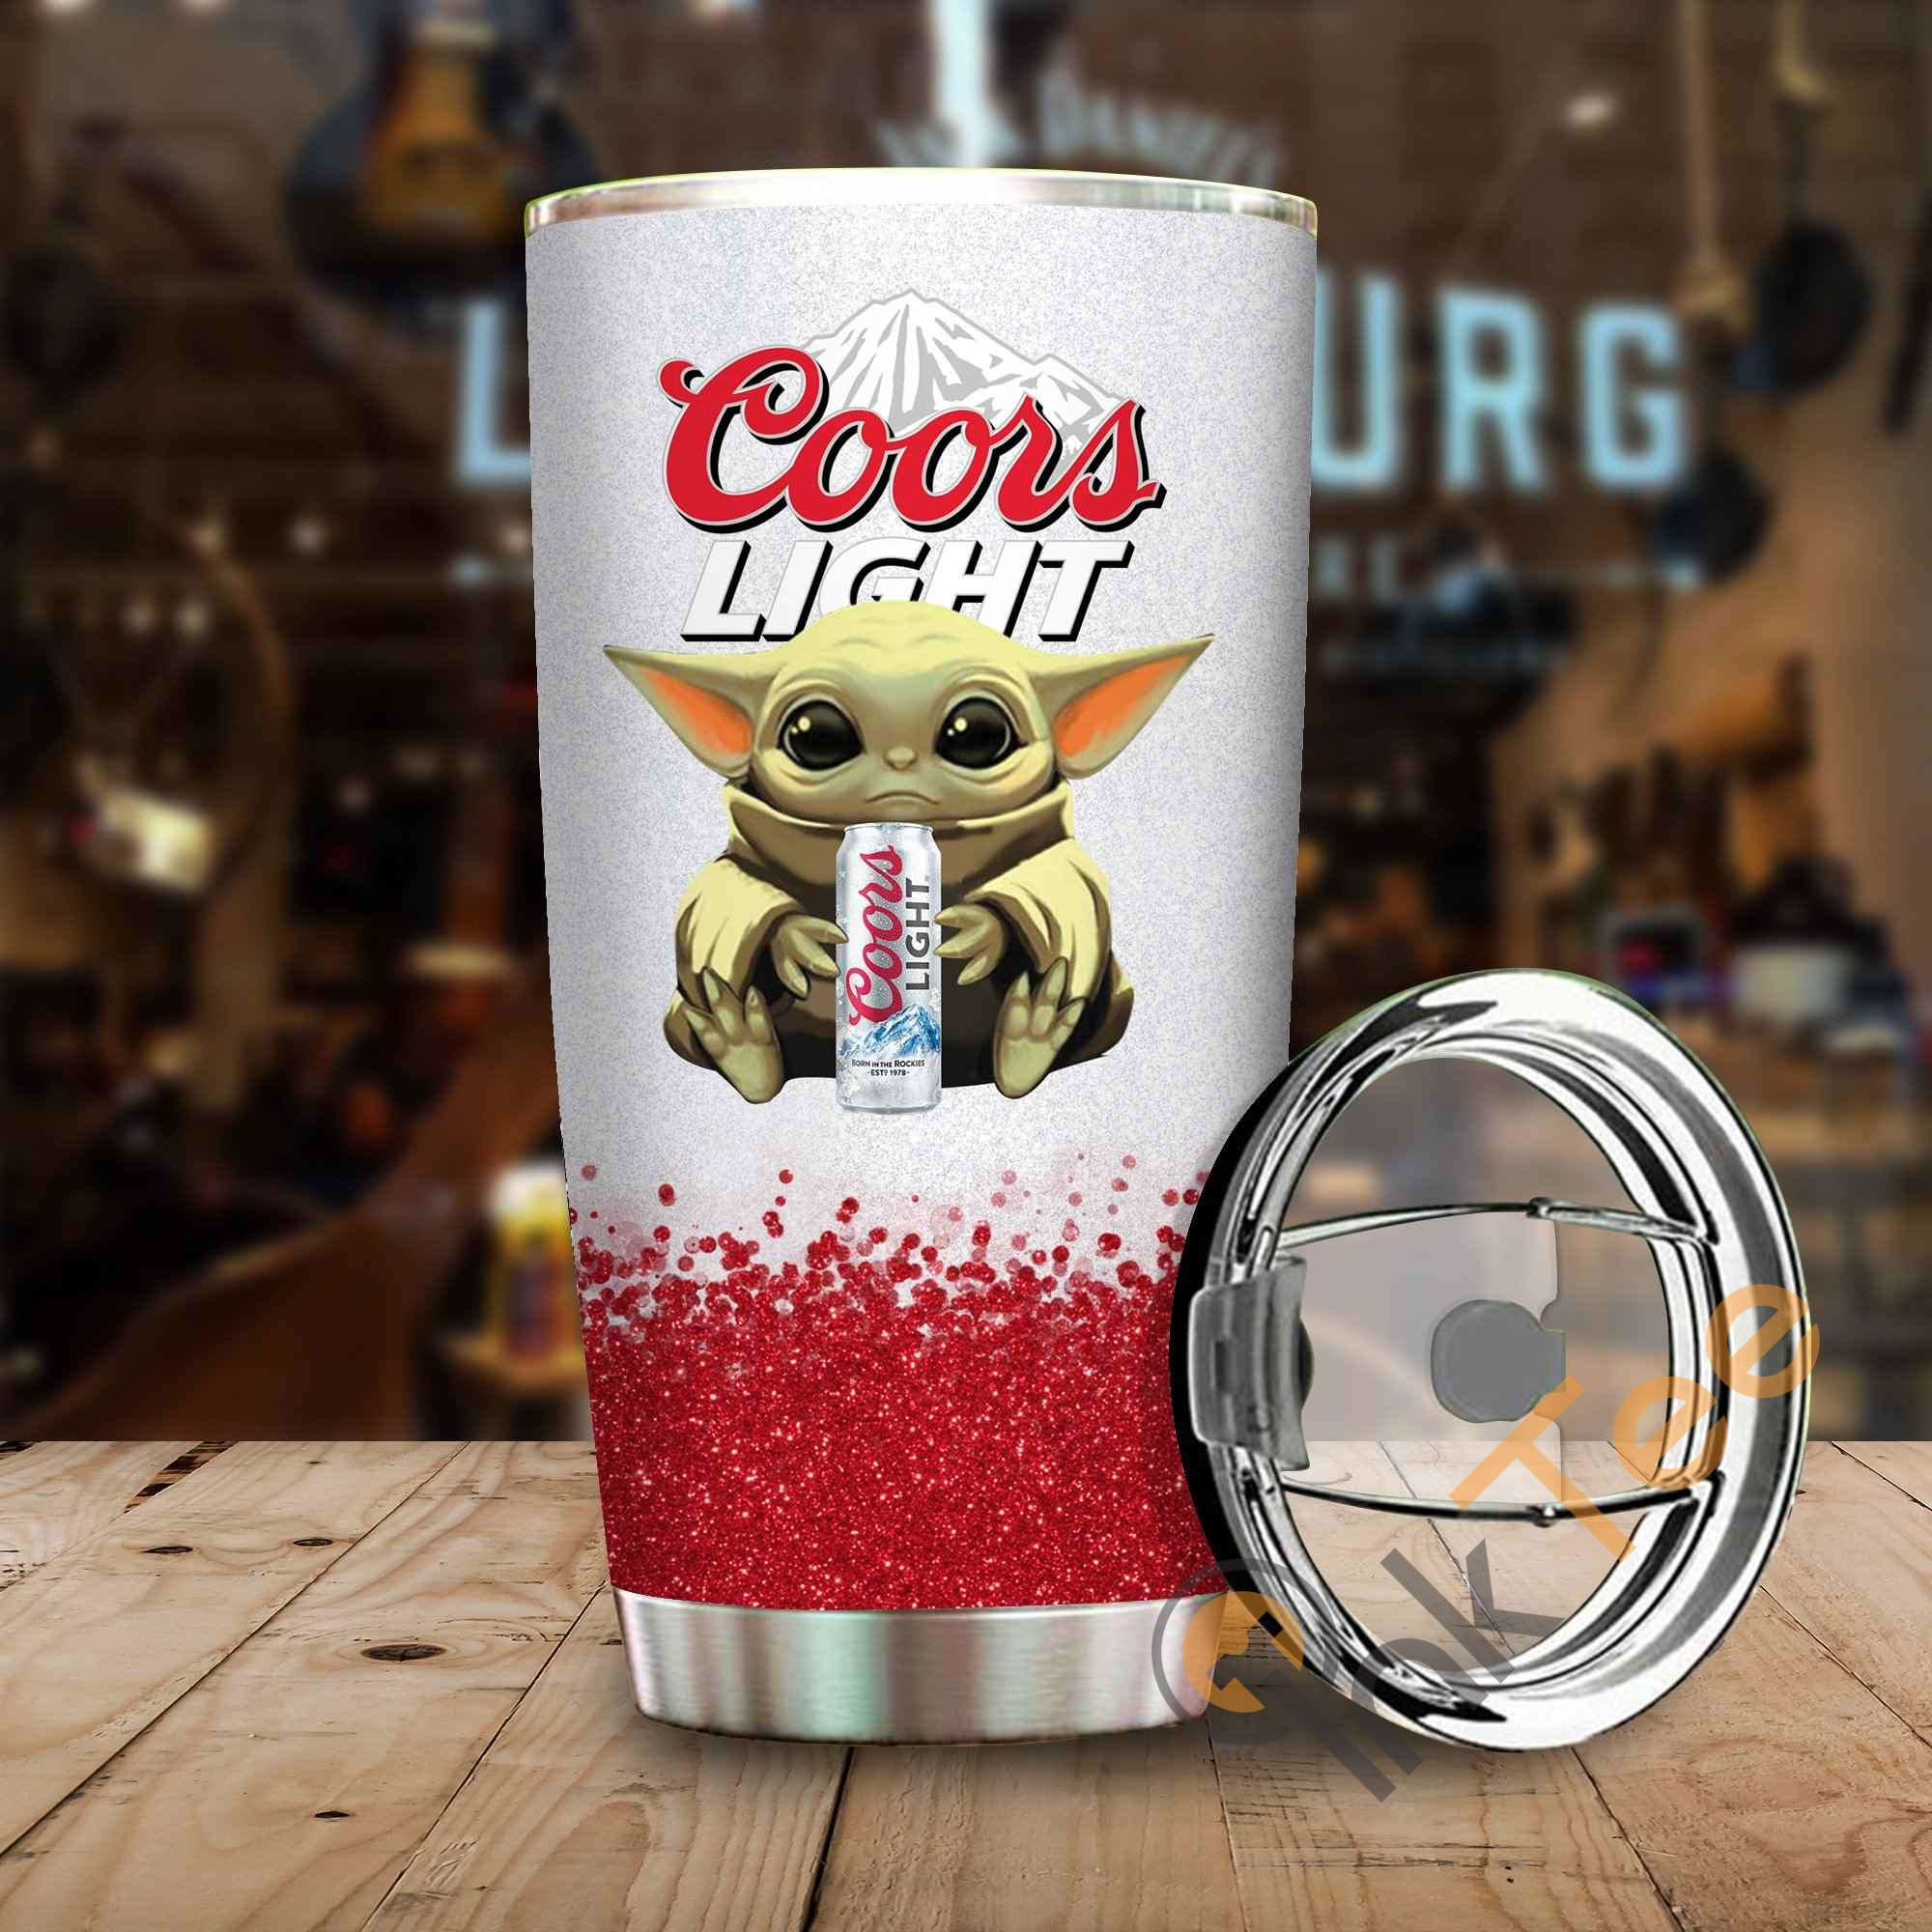 Baby Yoda Hold Coors Light Amazon Best Seller Sku 4063 Stainless Steel Tumbler